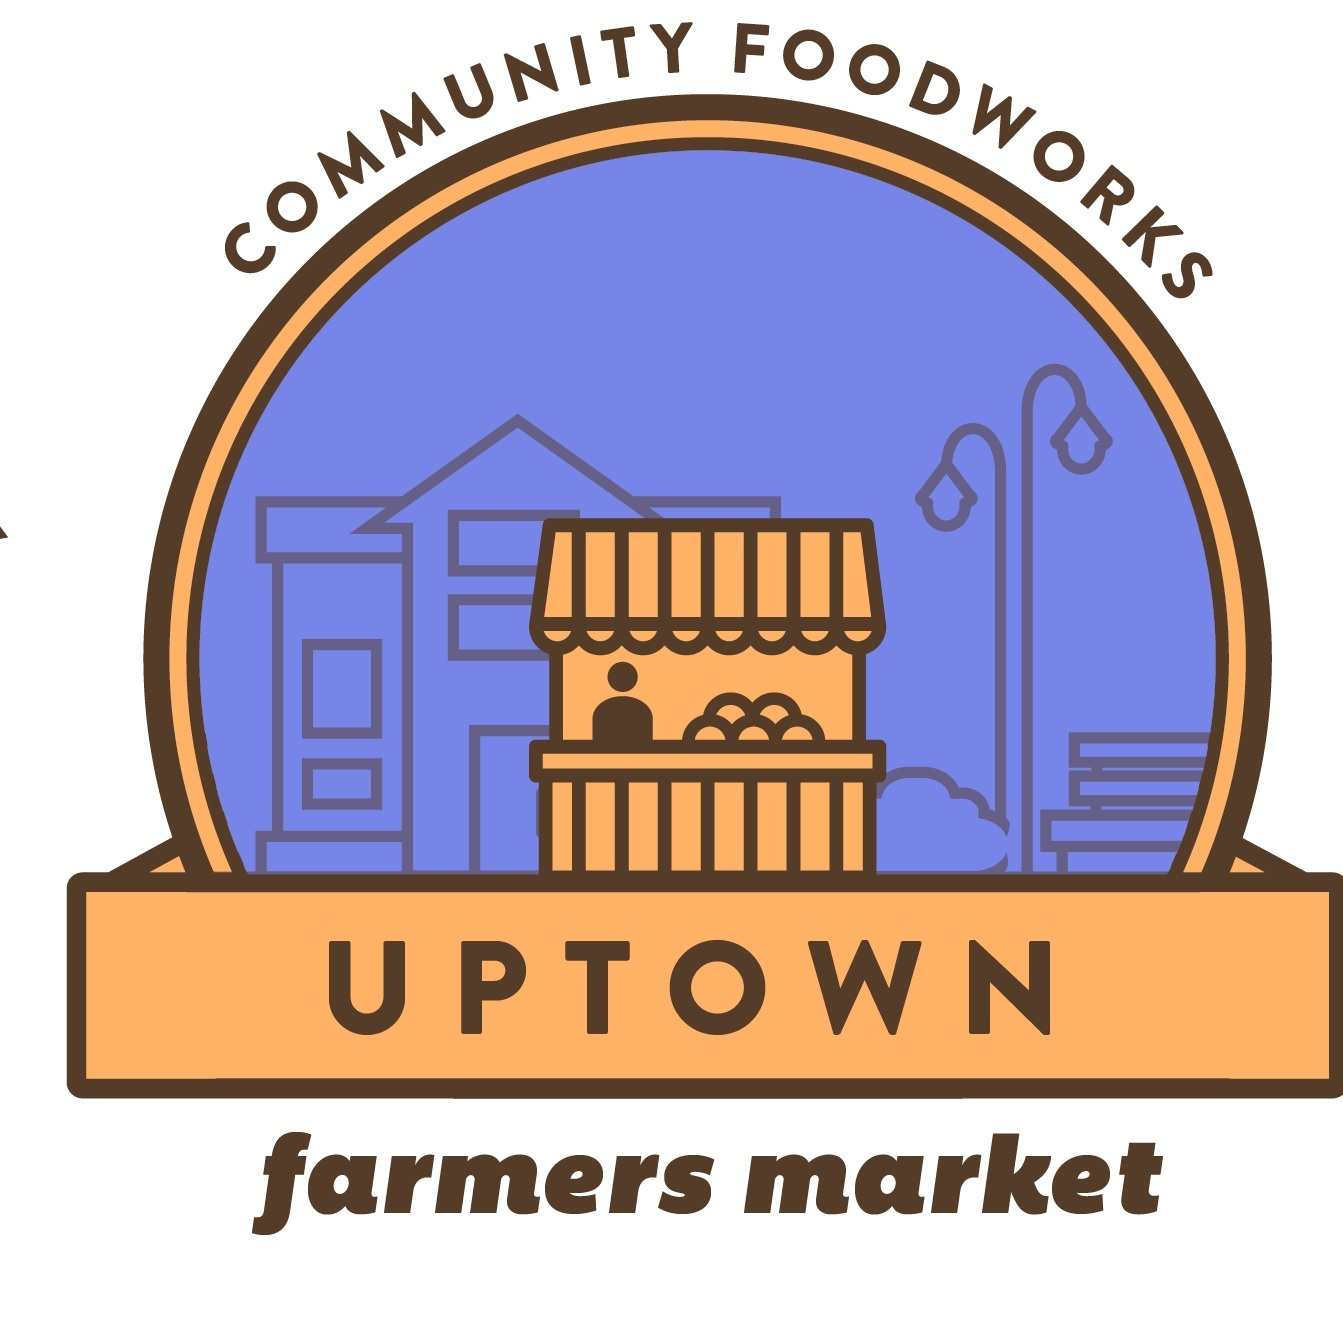 CommunityFoodworks_Brand-Update_UPTOWN 200 pixels.png